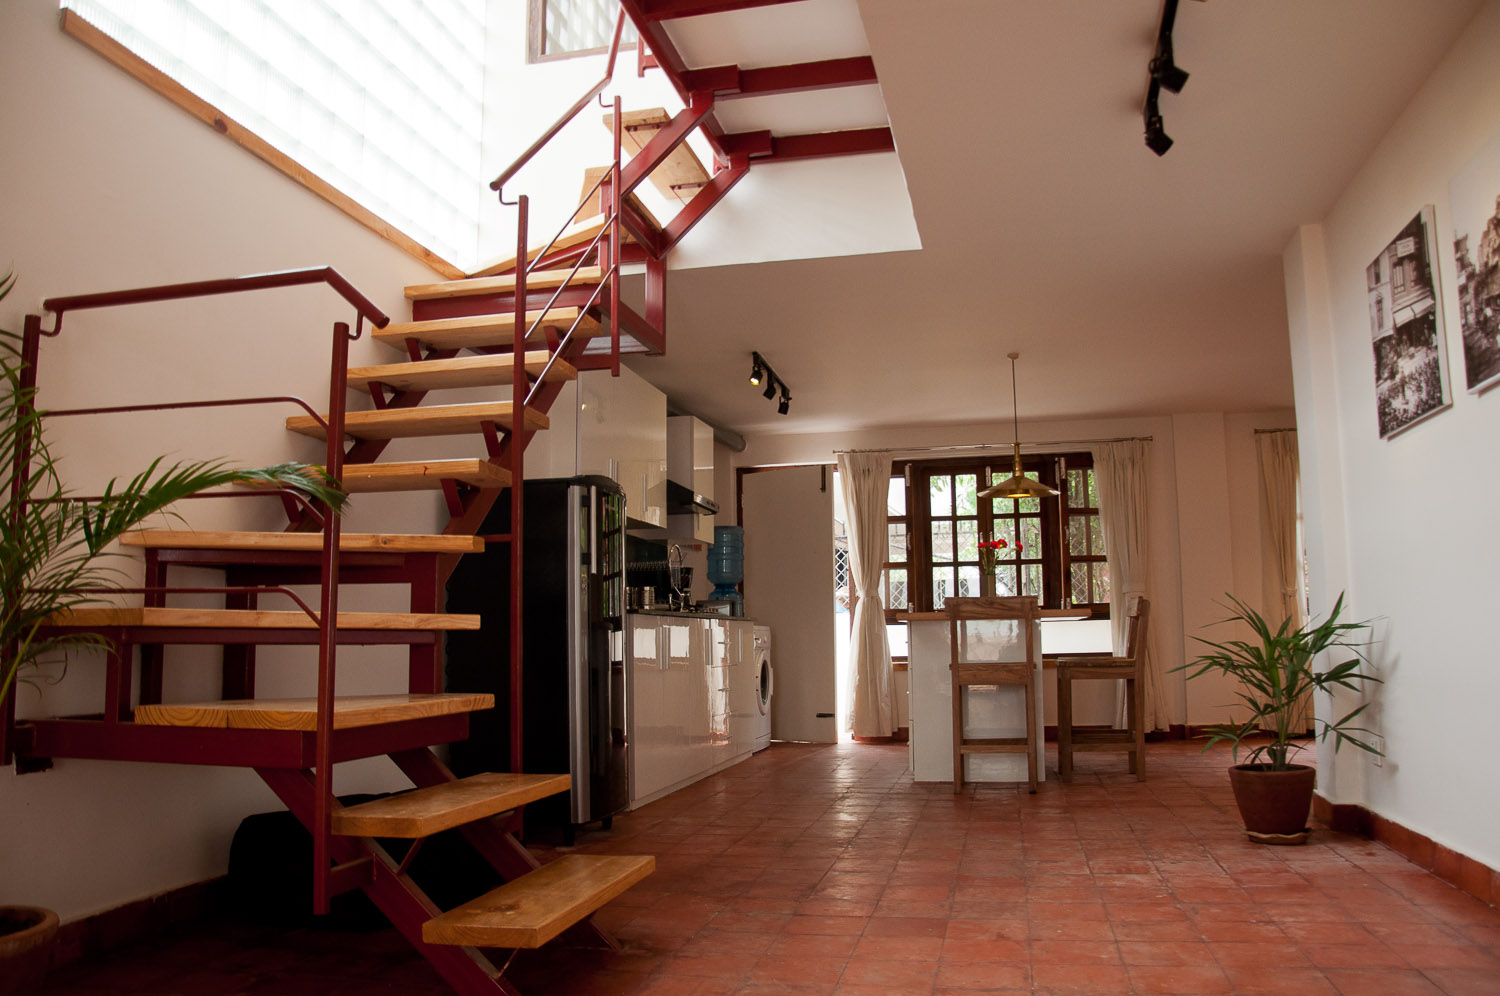 Wooden staircase that leads to the bedroom on 2nd floor.